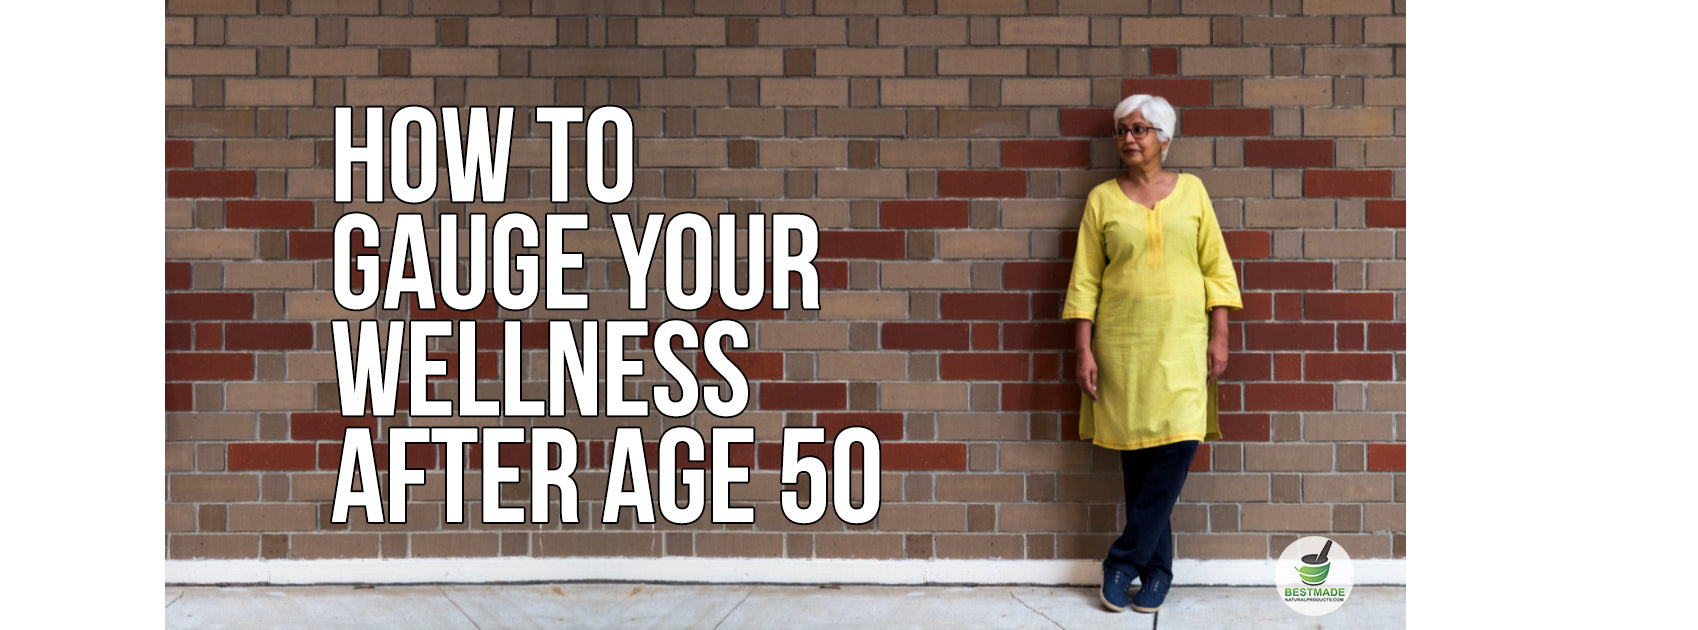 How To Gauge Your Wellness After Age 50